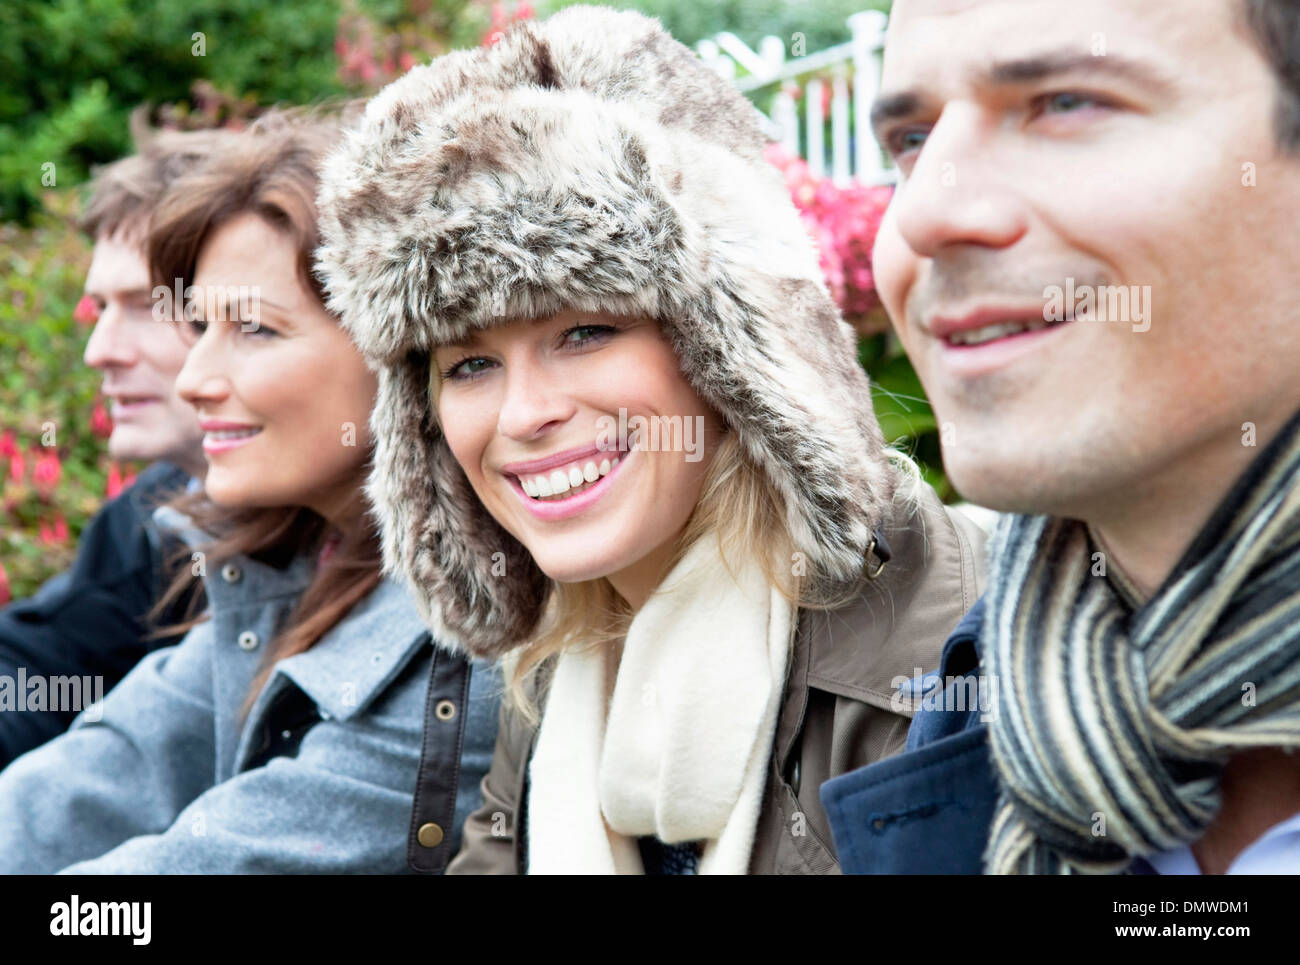 Four people outdoors in coats and scarves. - Stock Image